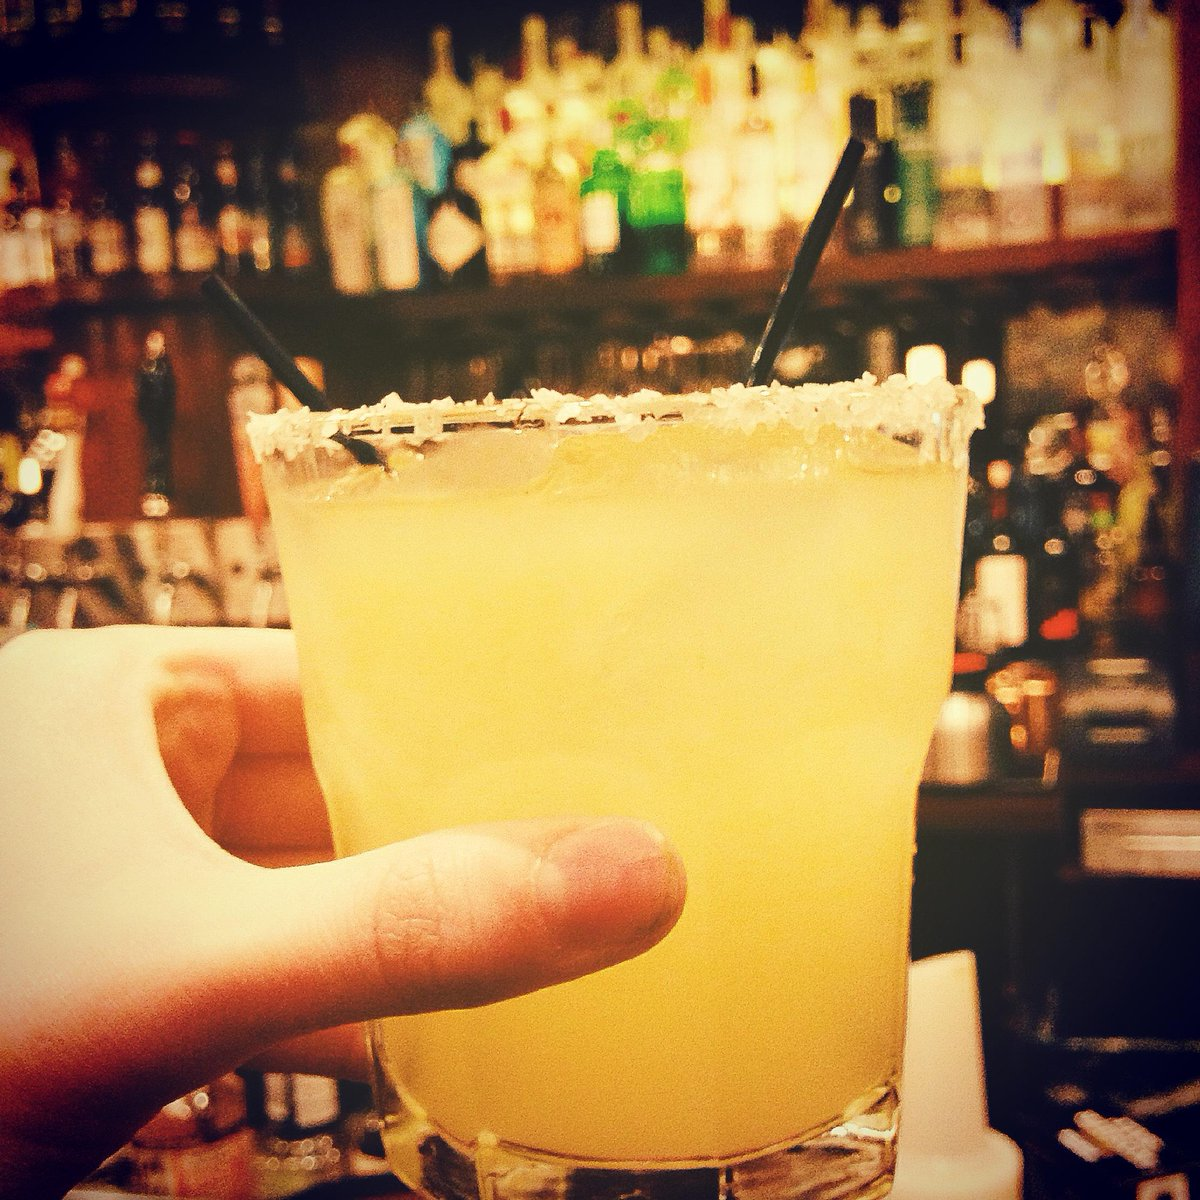 We have the perfect way for you to celebrate #NationalTequilaDay. http://t.co/9EwbqUWGdx http://t.co/hUZYDvINNz